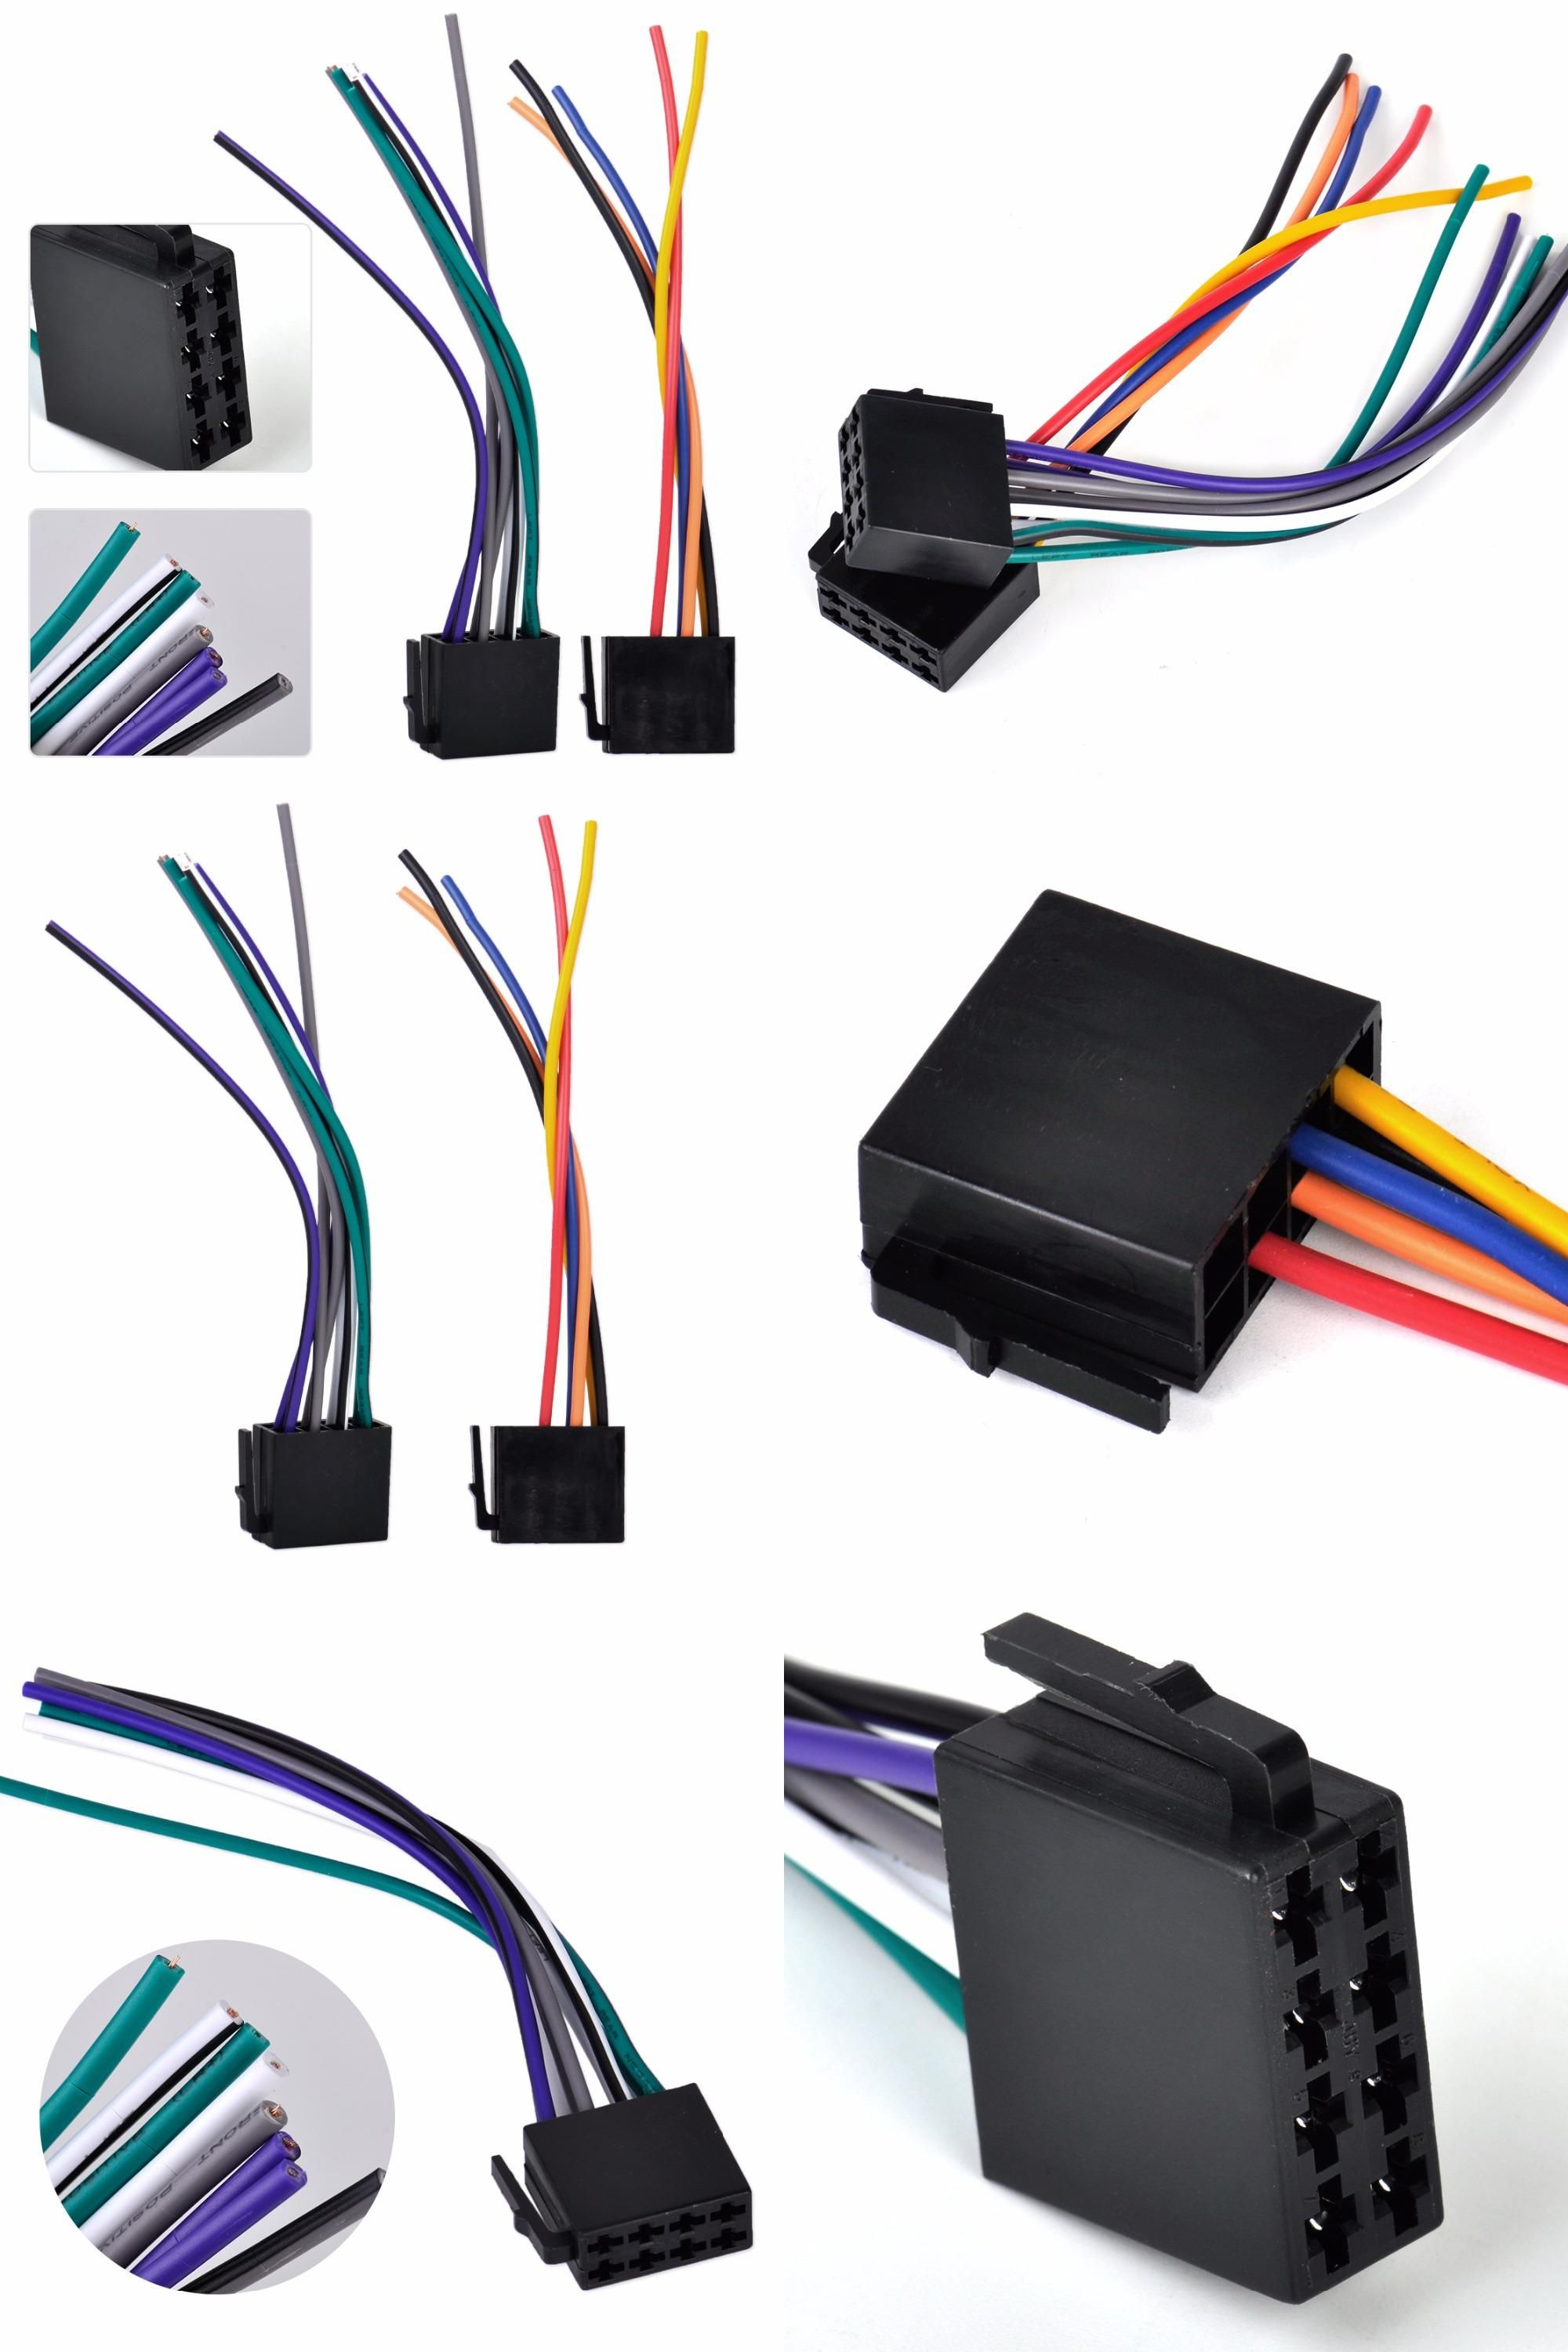 Universal Wiring Harness Connector 34 Diagram Images Plugs Ac00bb6b251465f58005a5497ae8ab74 Visit To Buy New Iso Wire Female Adapter